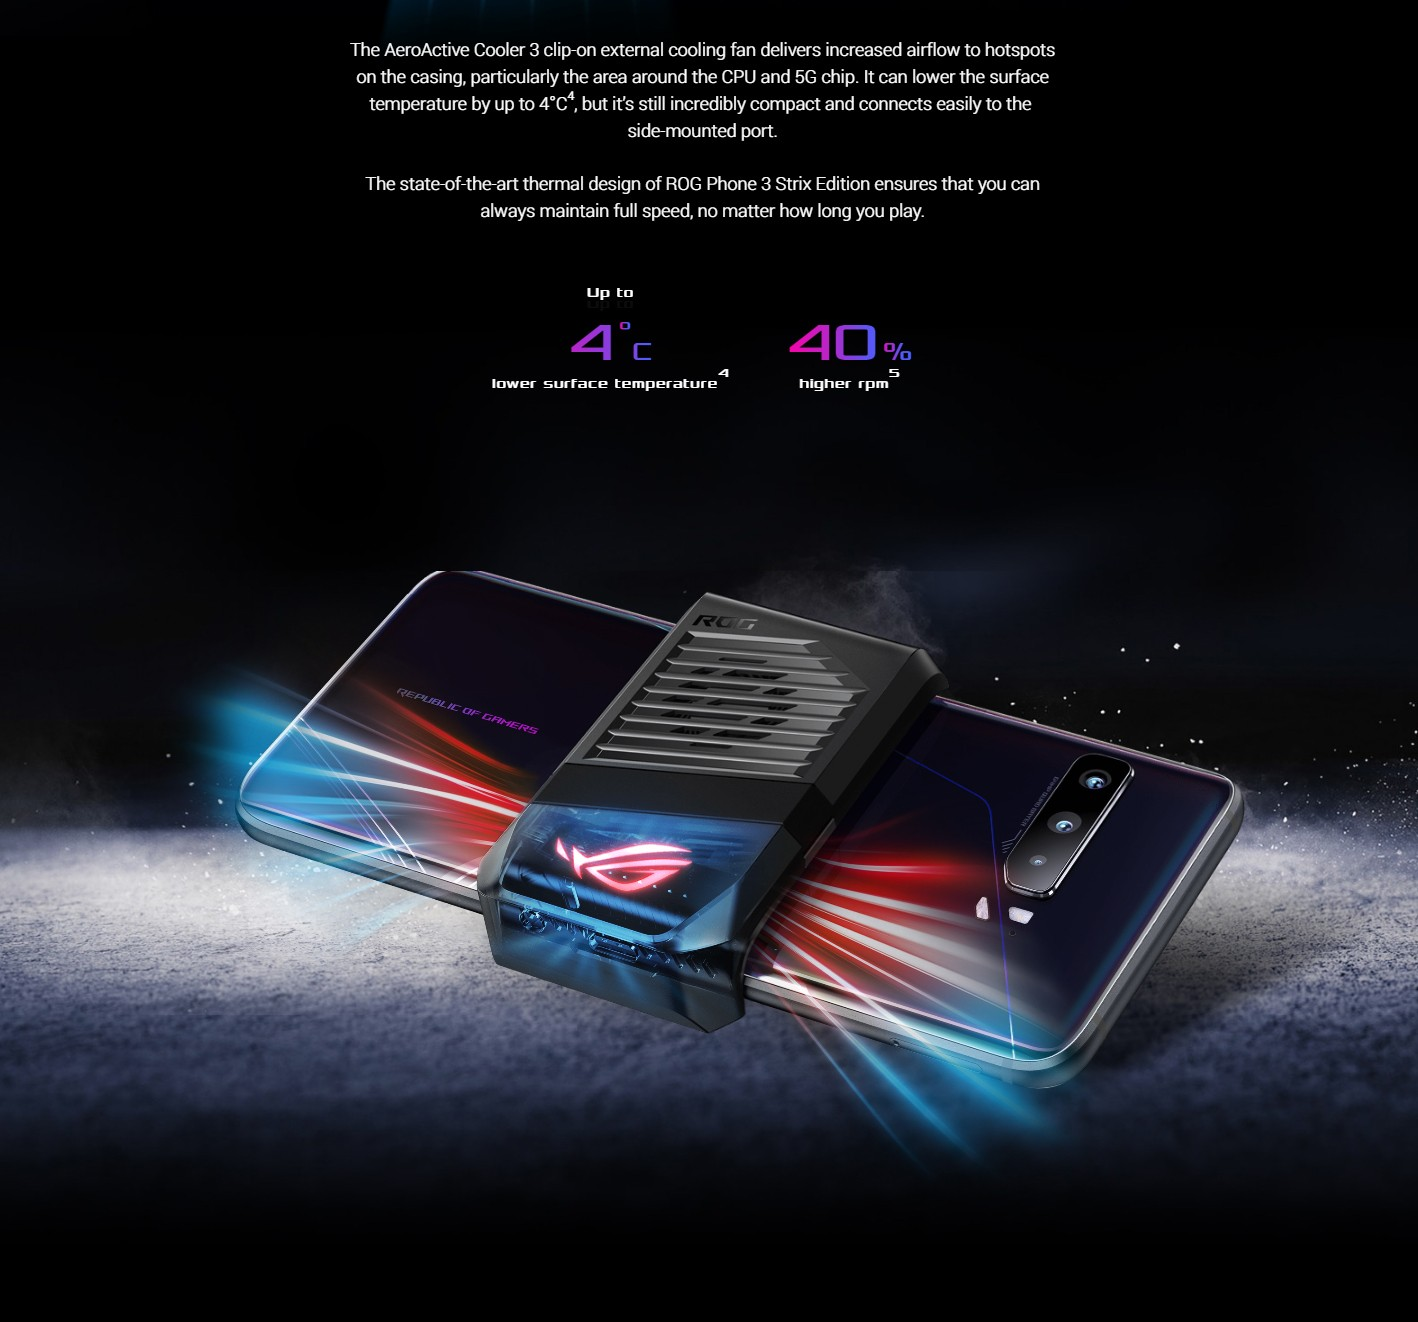 ASUS ROG Phone 3 Gaming 5G Smartphone Cooling System